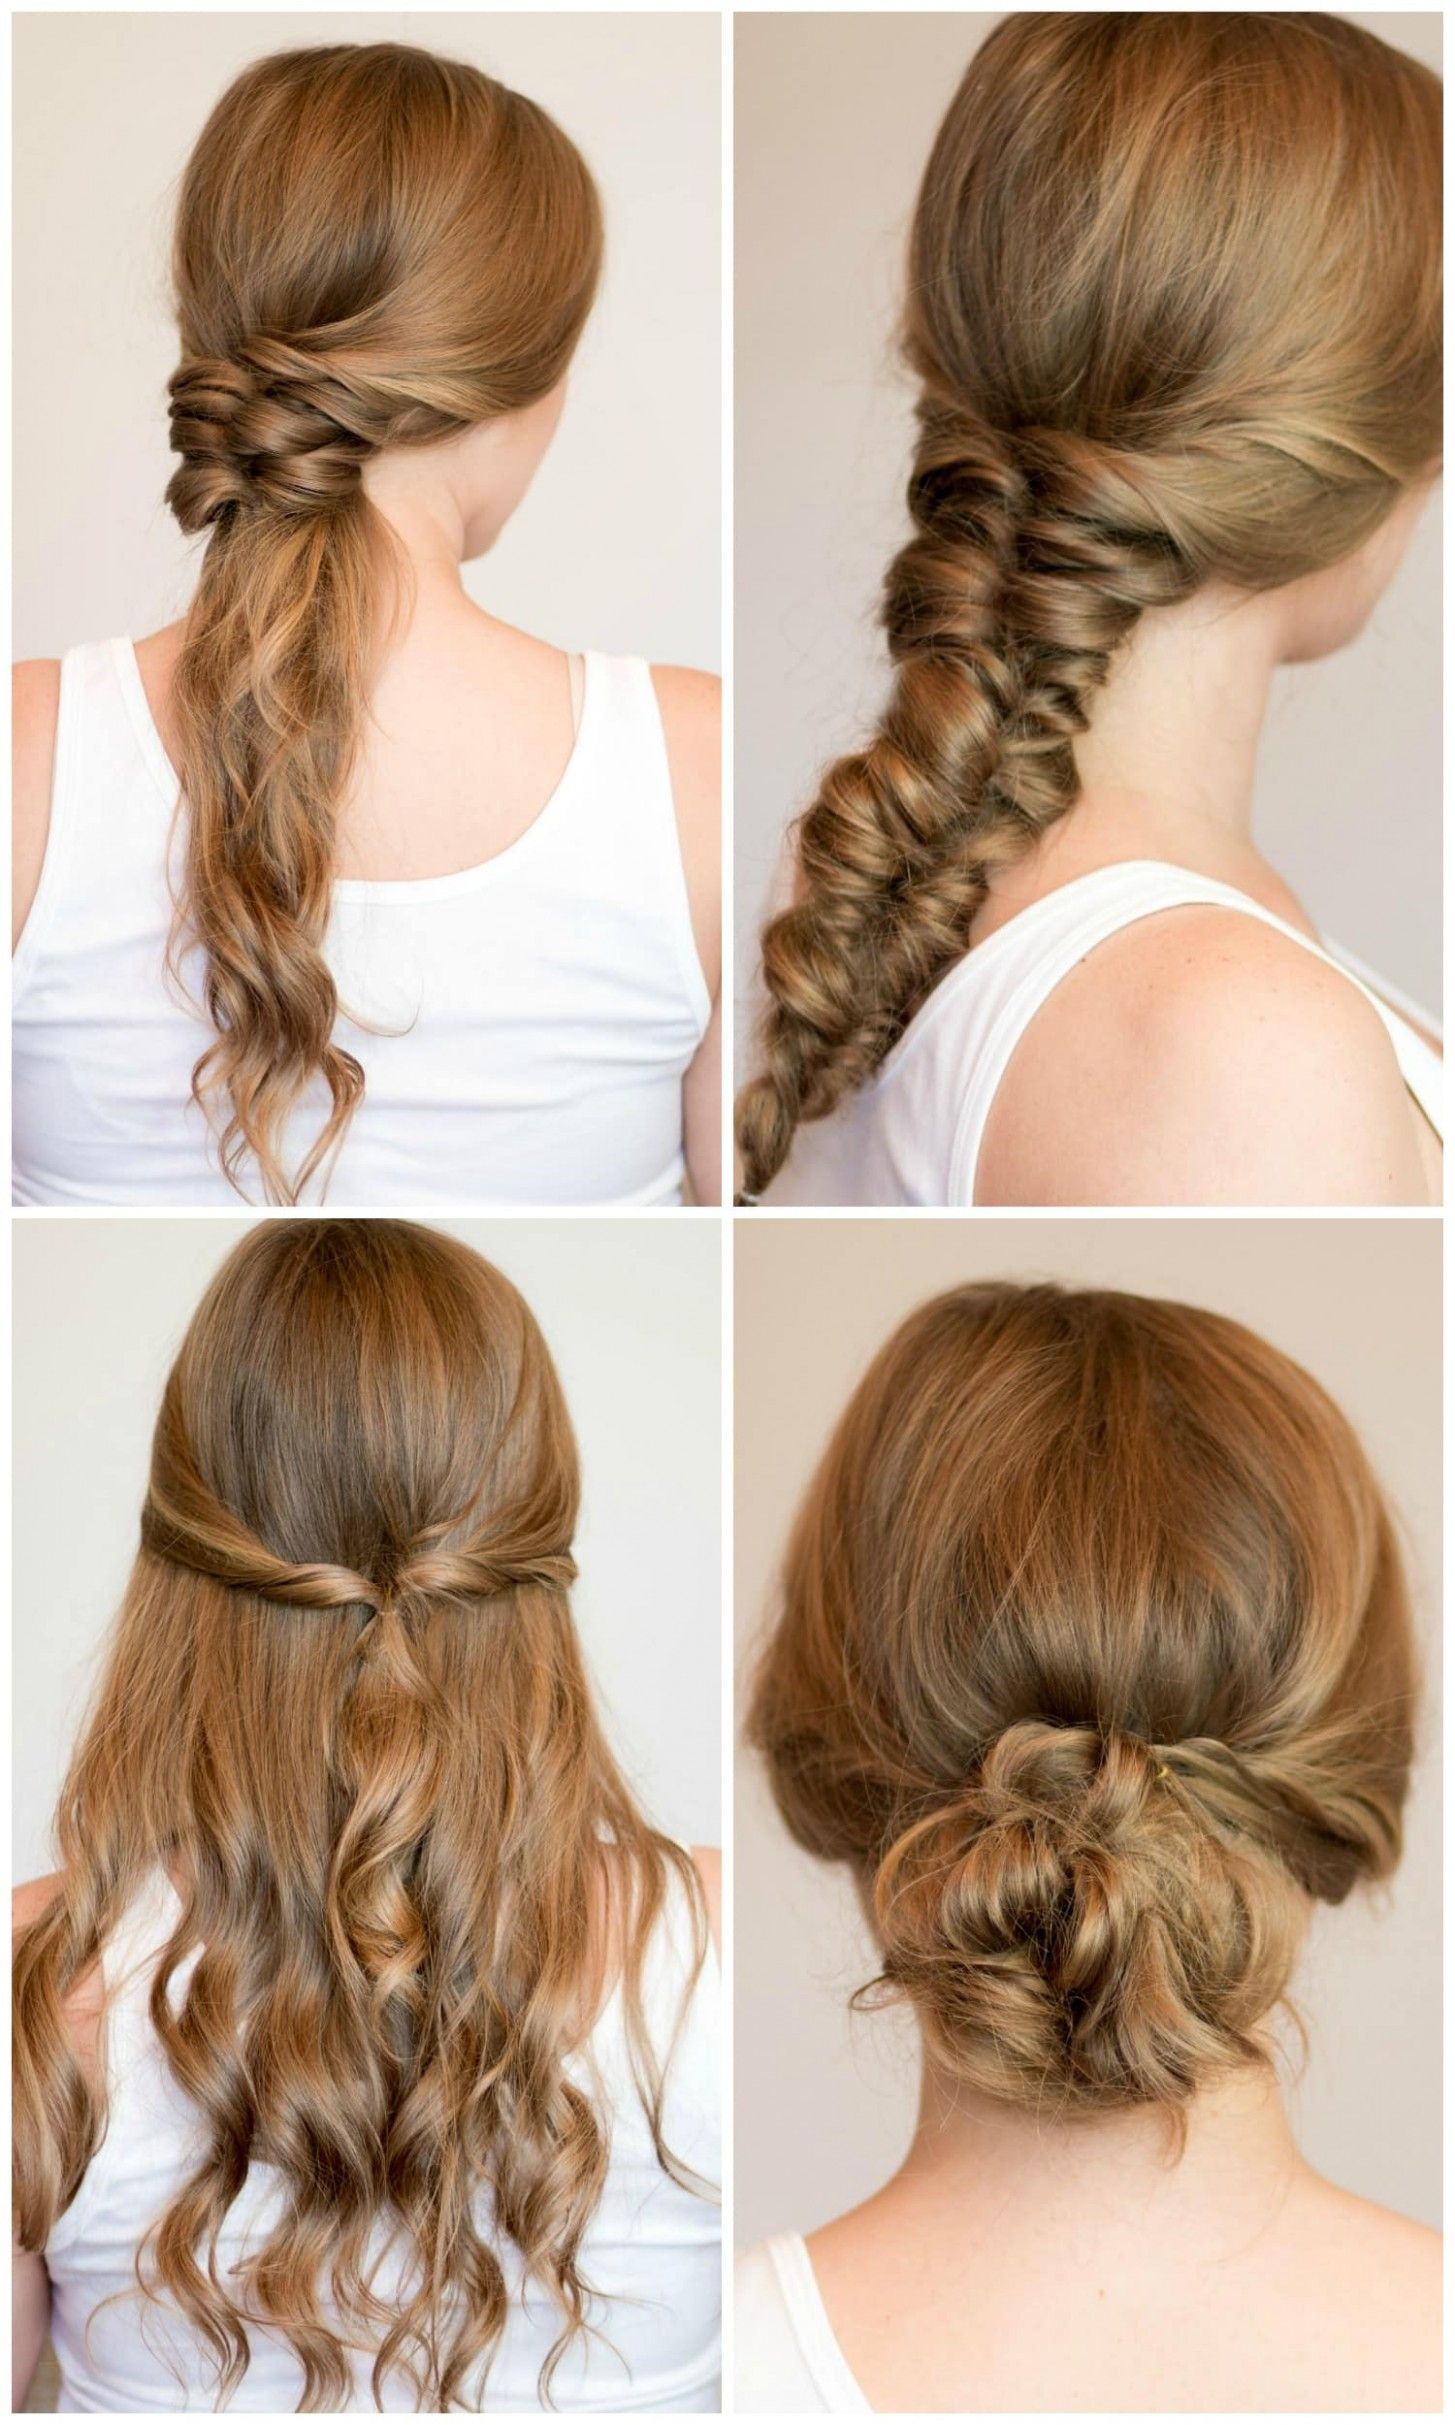 Easy Official Hairstyle Easy Official Hairstyle - Easy Official